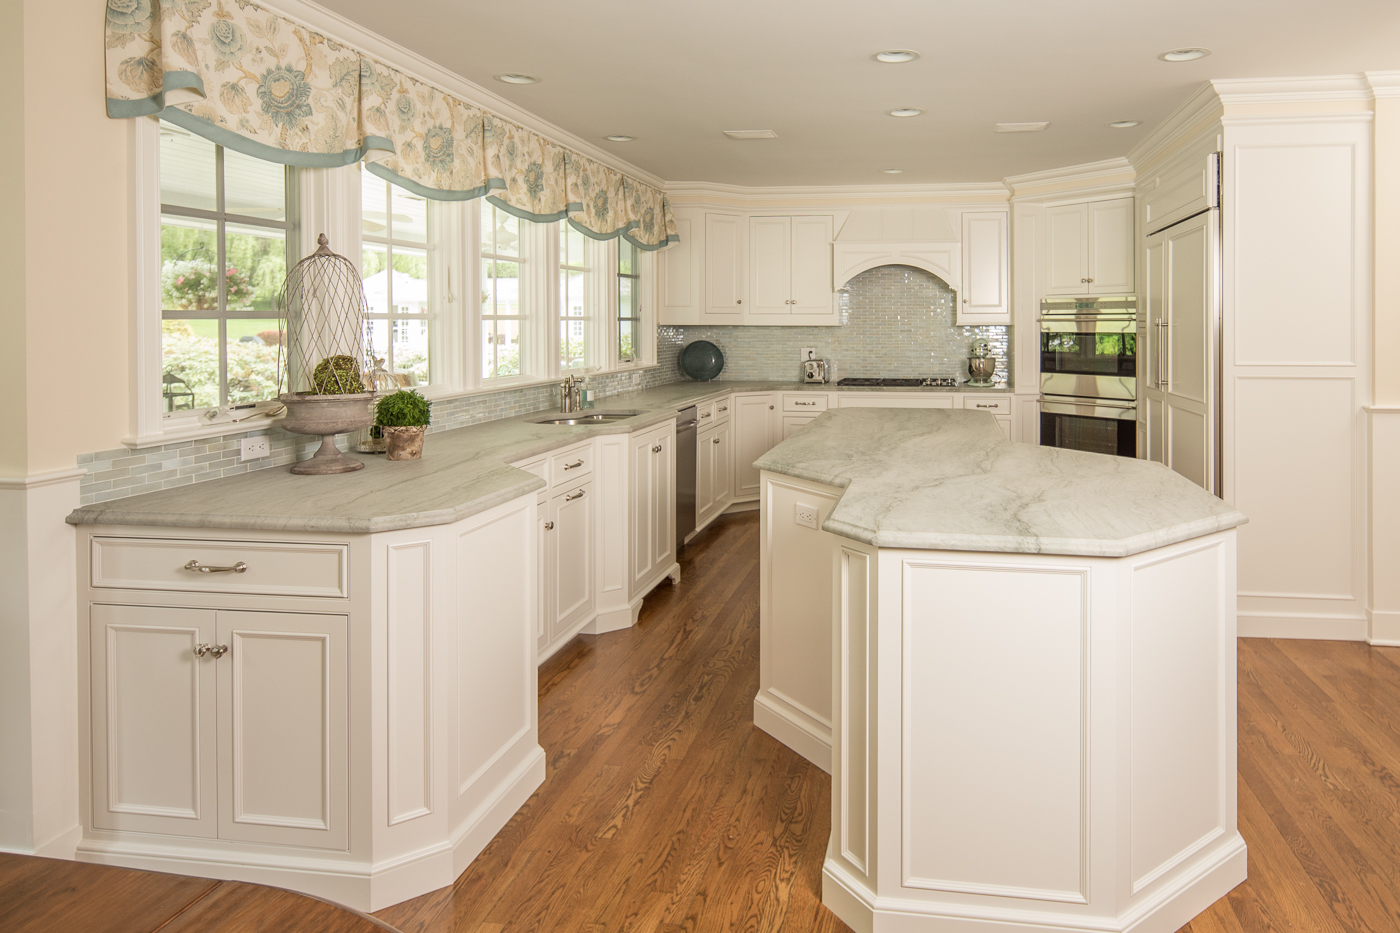 Kitchen Design Ct Fair Ackley Cabinet Llc Inspiration Design